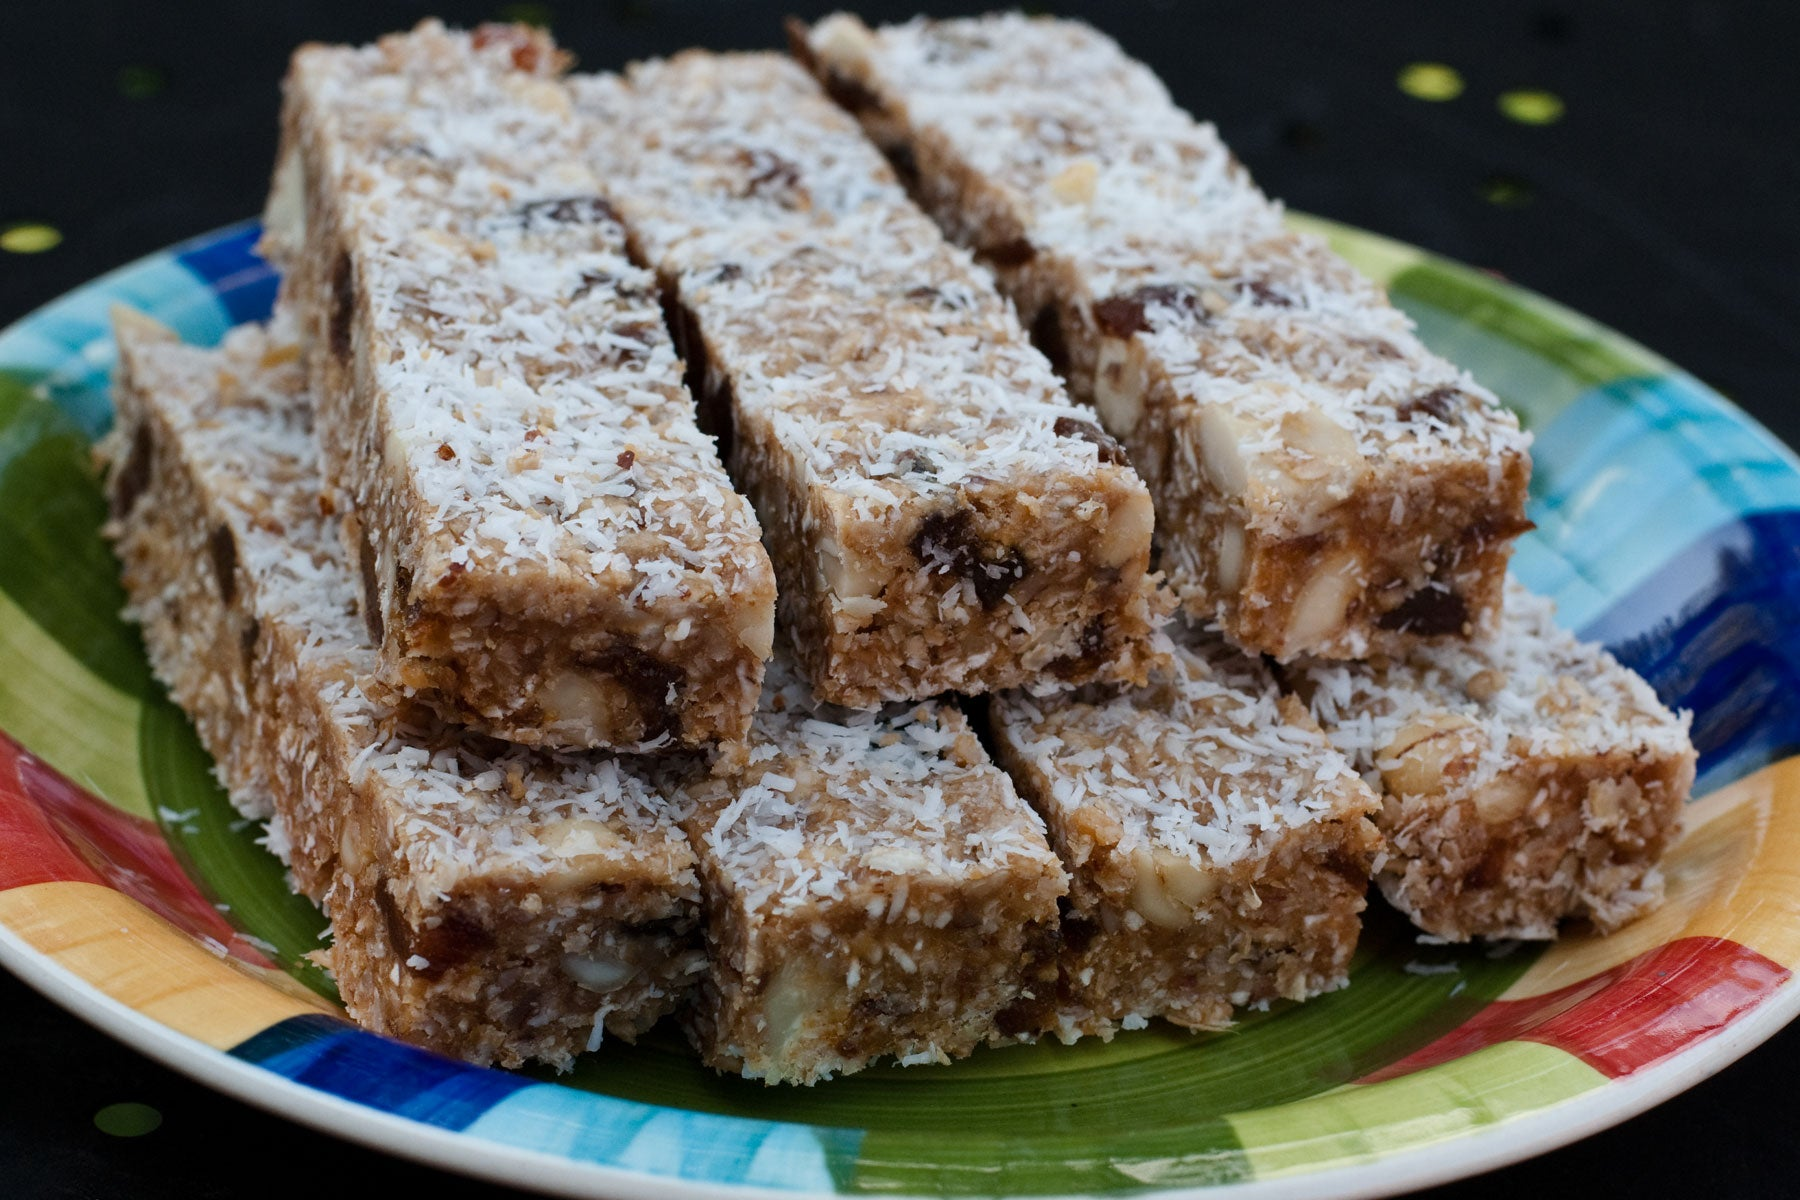 High-protein low-sugar energy bars